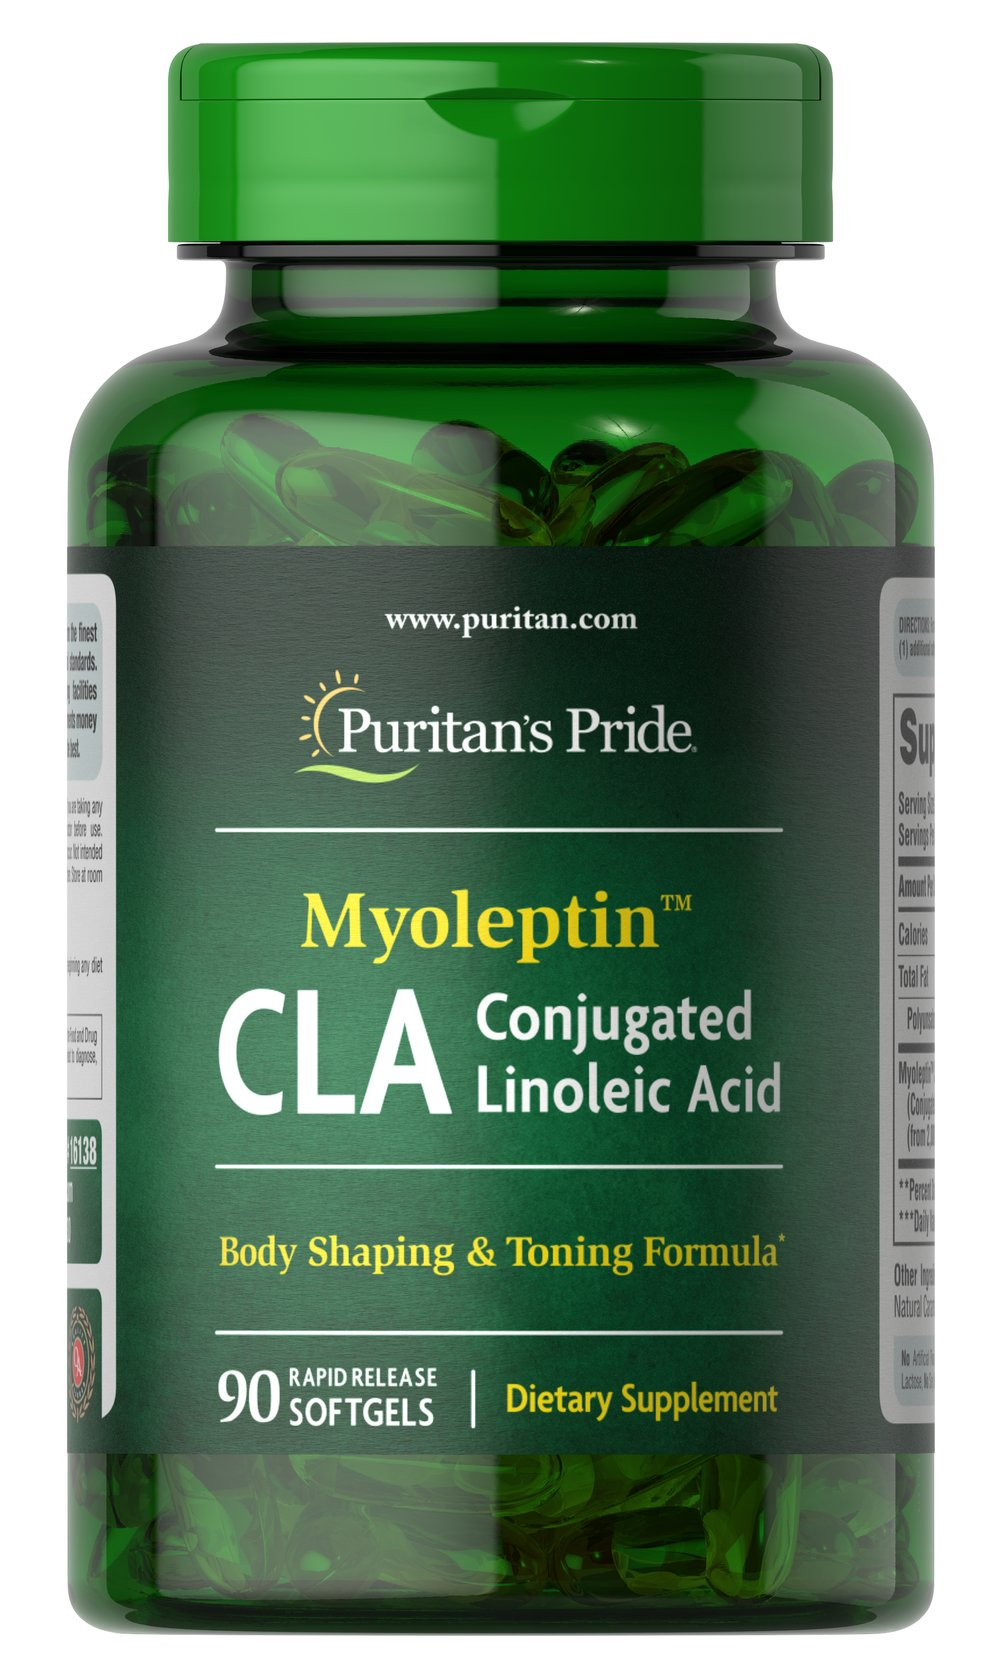 Myo-Leptin™ CLA 1000 mg <p>CLA (Conjugated Linoleic Acid) supports a healthy body composition**</p><p>Derived from Safflower Oil, CLA supports your dieting goals**</p><p>Rapid Release softgels are formulated for quick release into your system</p><p>Use with a reduced calorie diet and daily exercise program</p> 90 Softgels 1000 mg $19.99